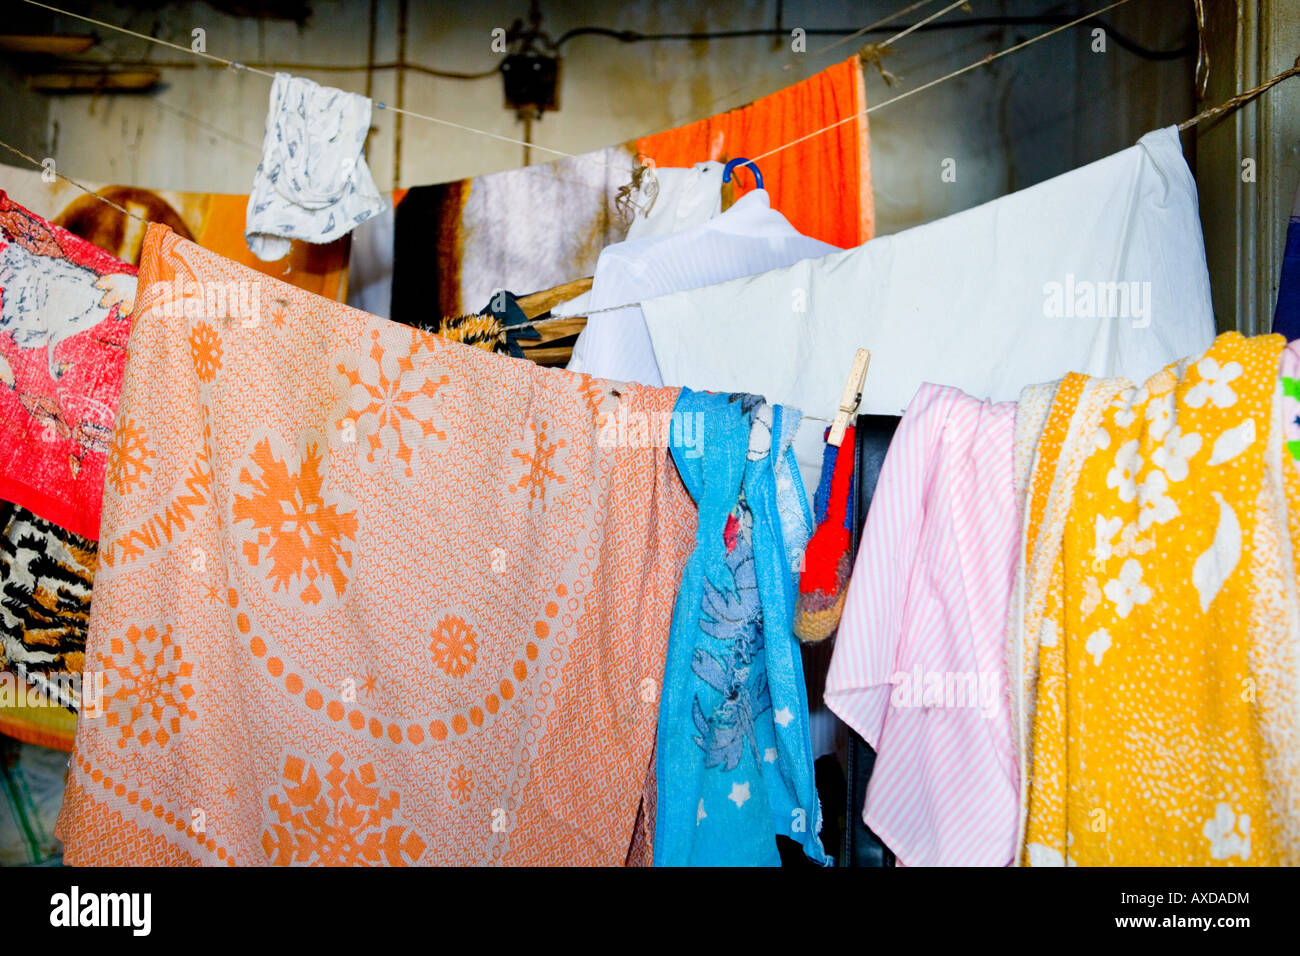 Laundry waits to get dry - Stock Image